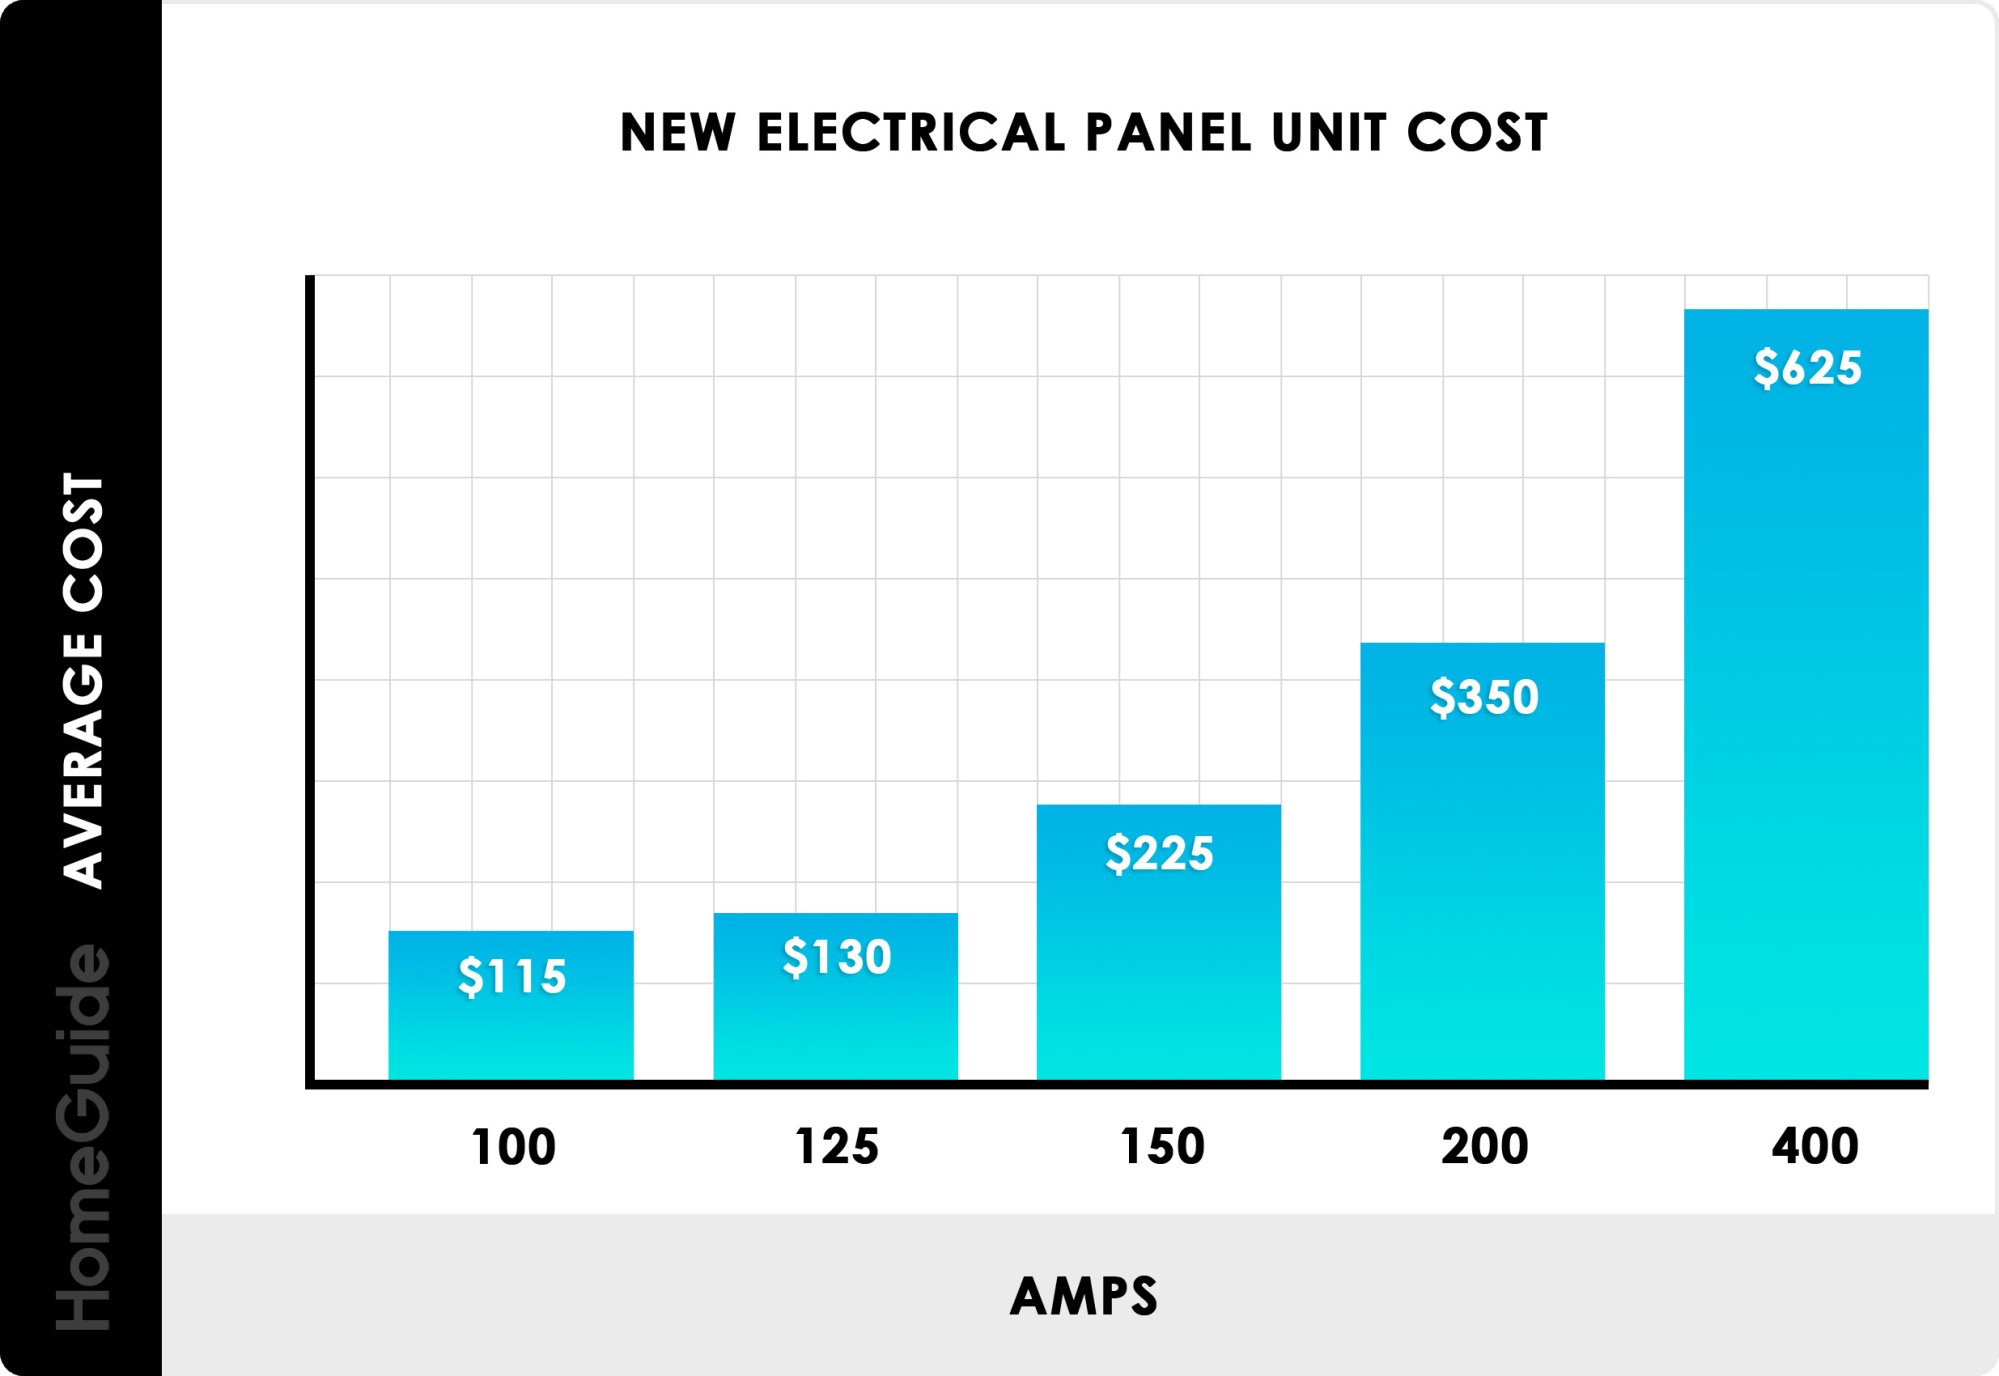 hight resolution of new electrical panel unit costs chart